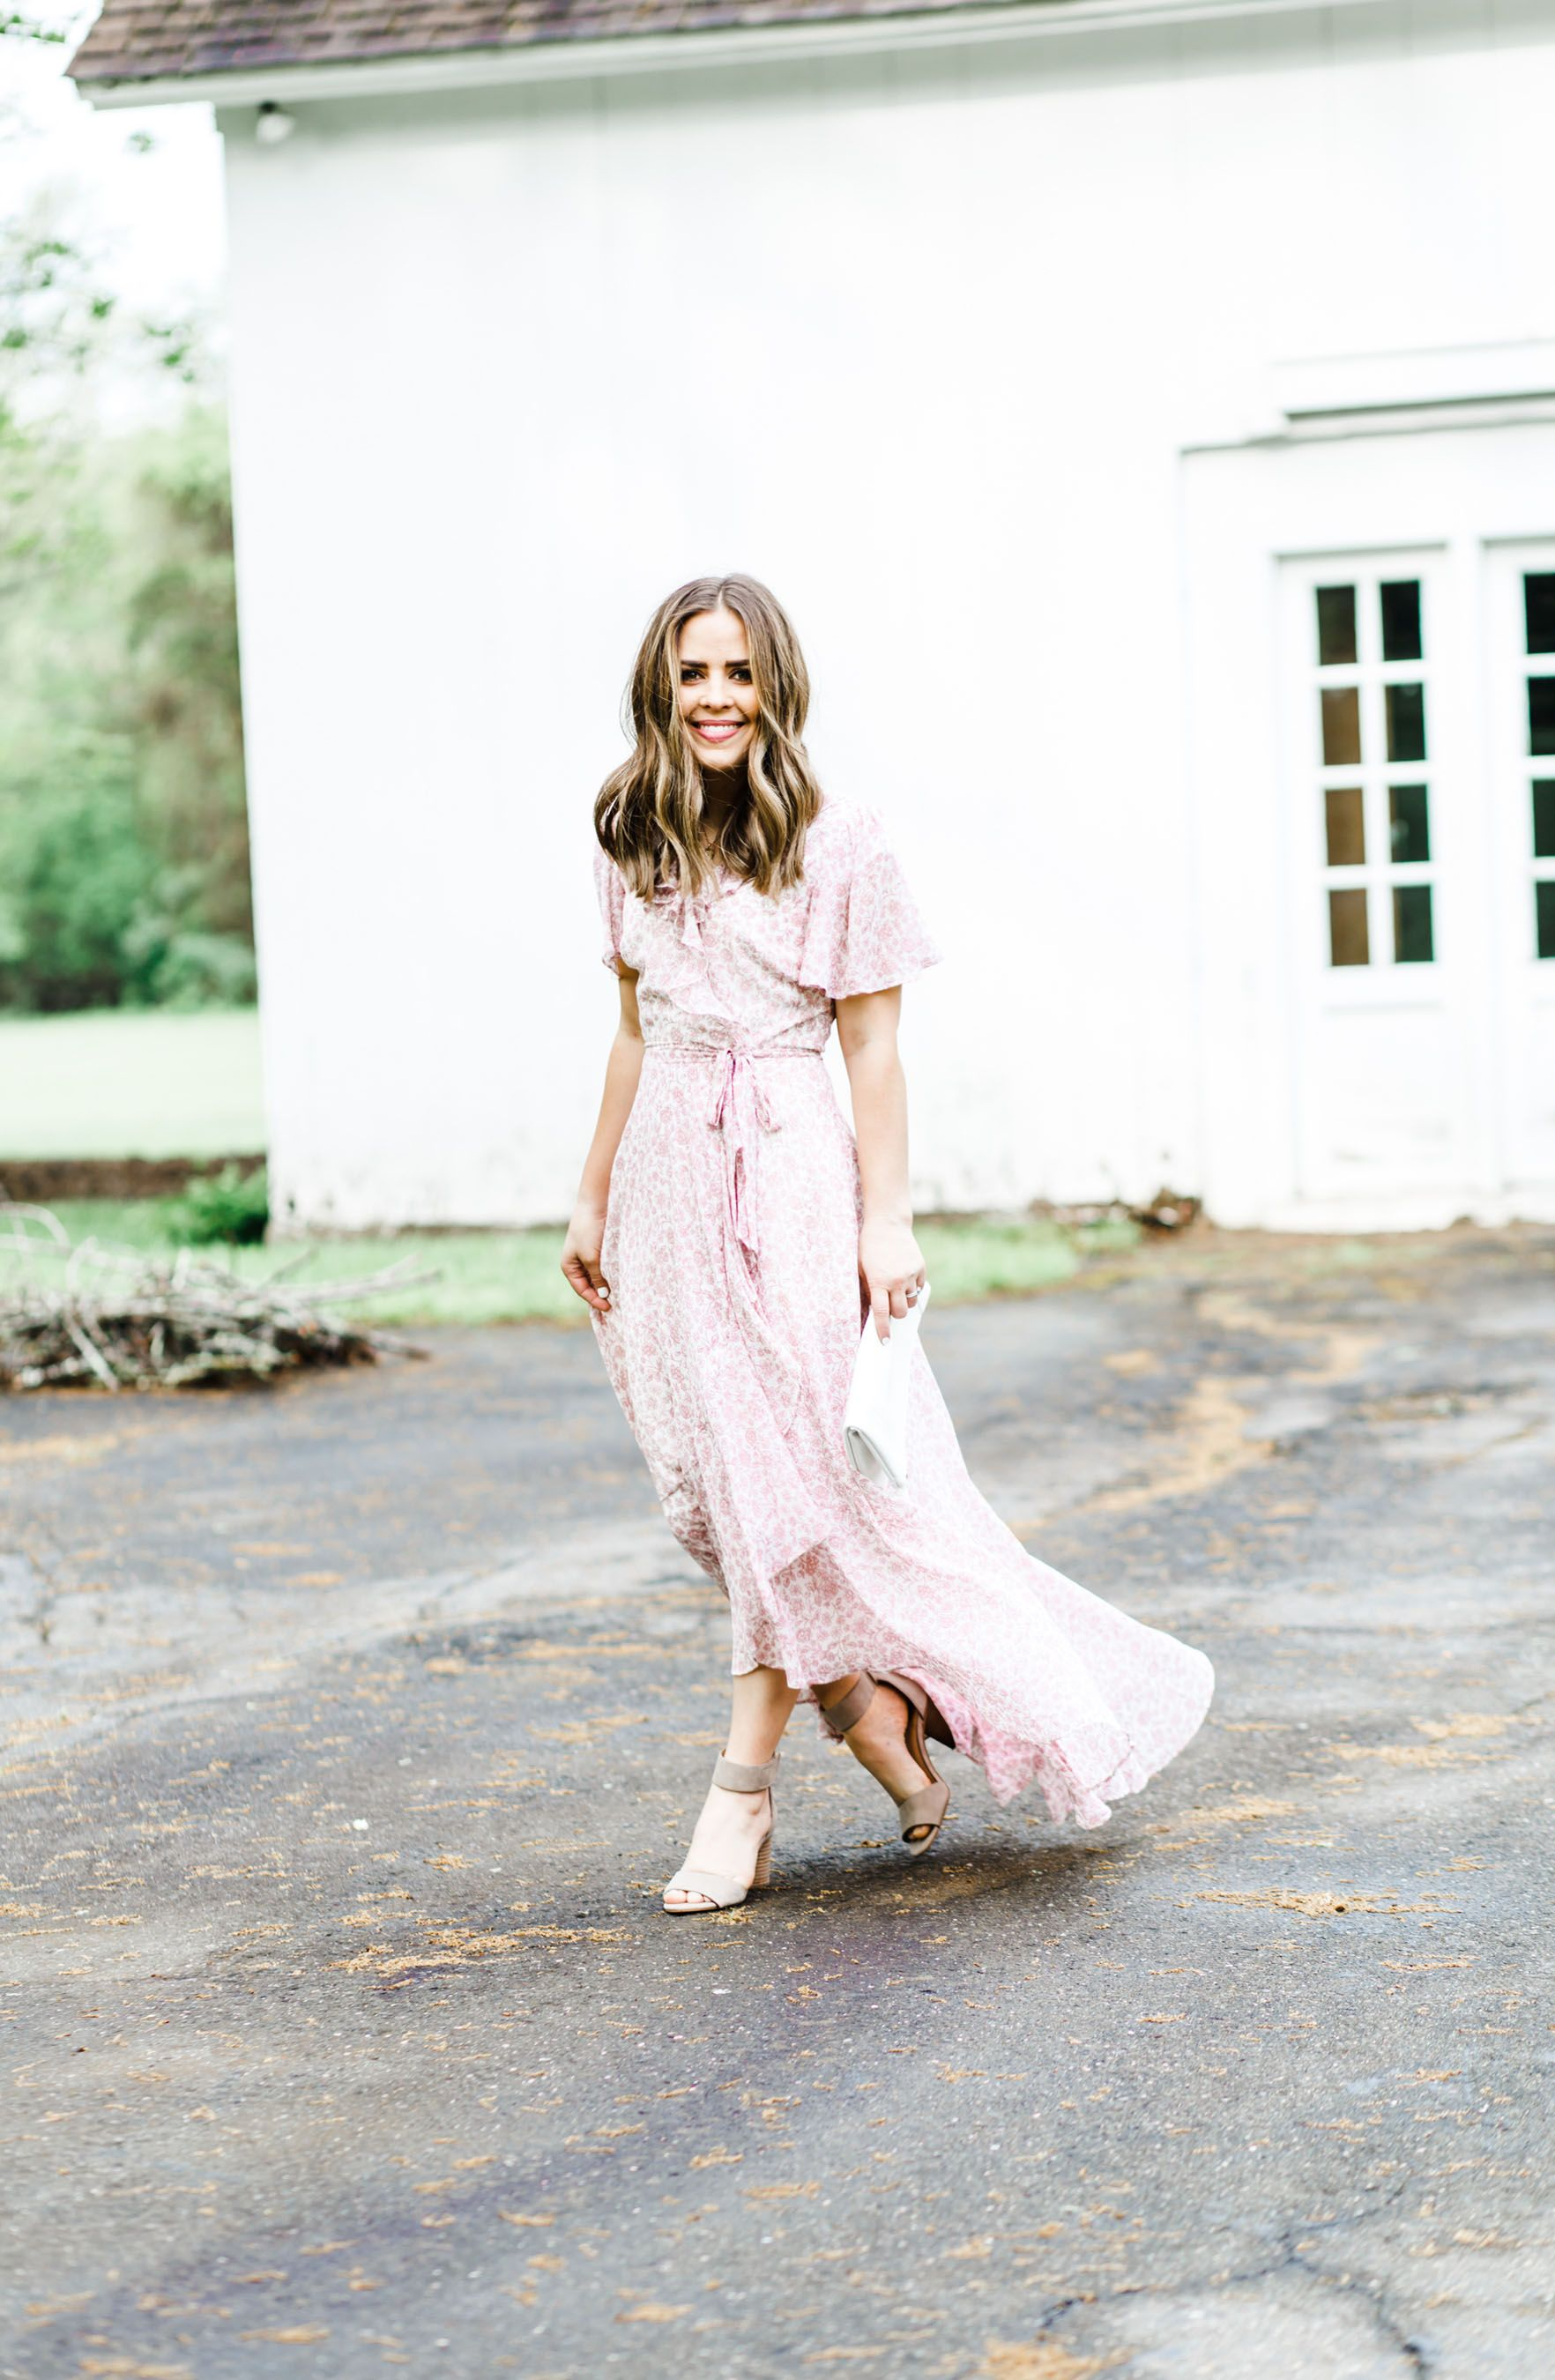 The Prettiest Wedding Guest Dresses And What Not To Wear To A Summer Wedding Dress Cori Lynn Wedding Guest Dress Guest Dresses Pretty Dresses [ 2700 x 1764 Pixel ]